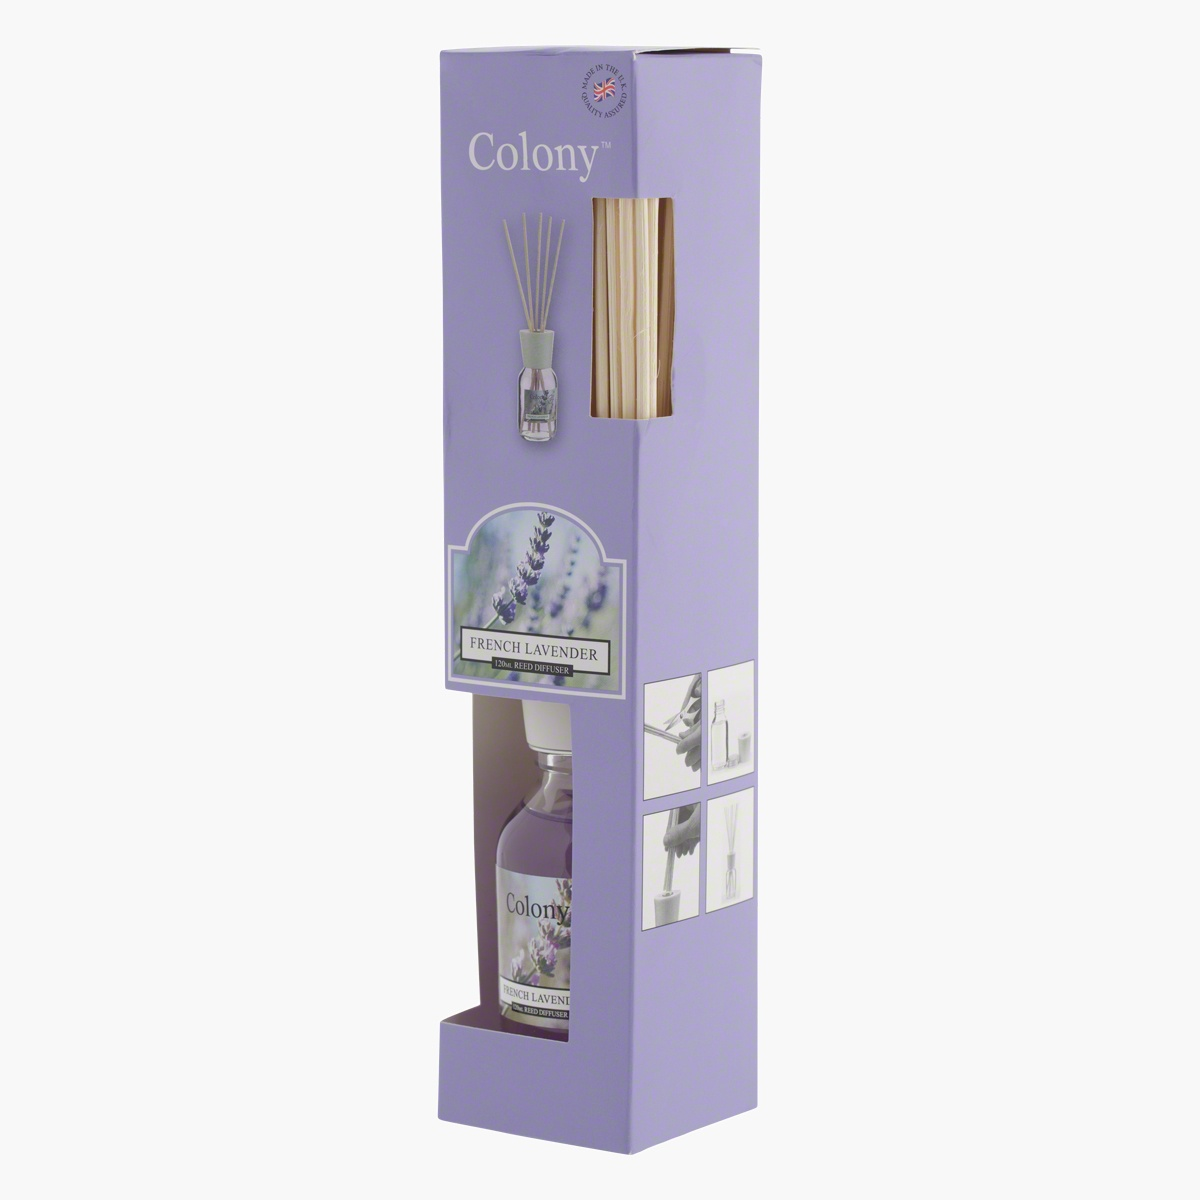 Colony French Lavender Reed Diffuser - 120 ml